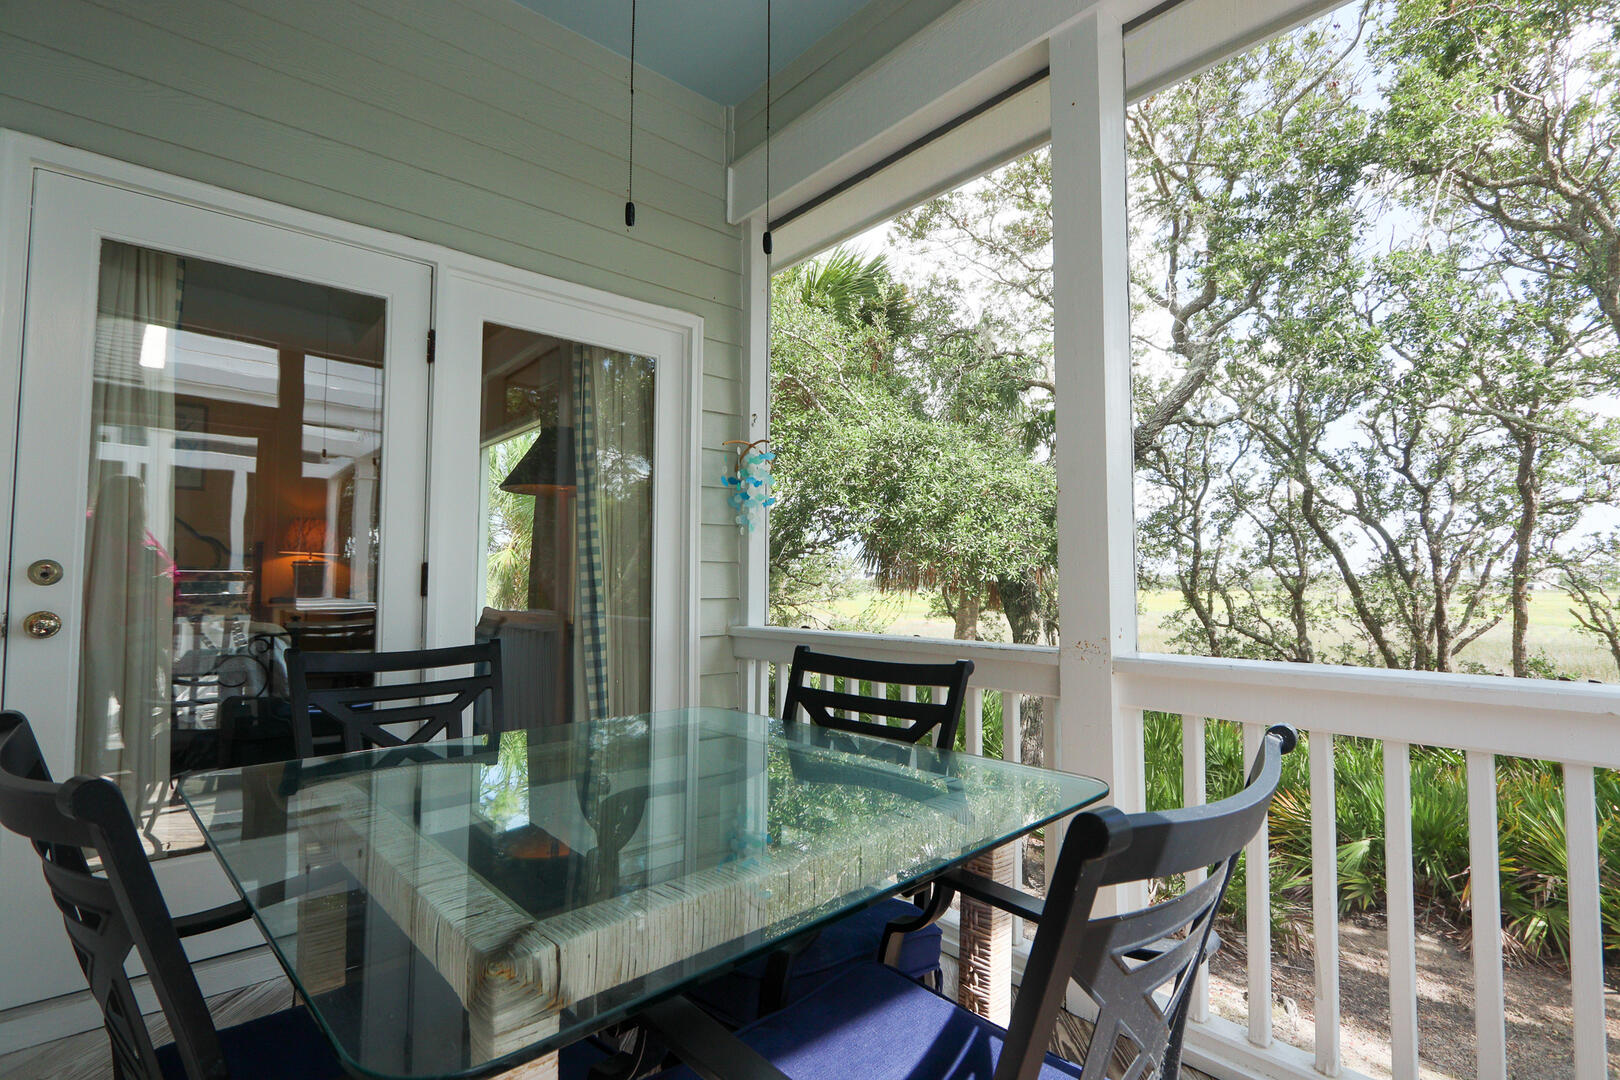 Screened in porch off of living and dining area overlooking marsh